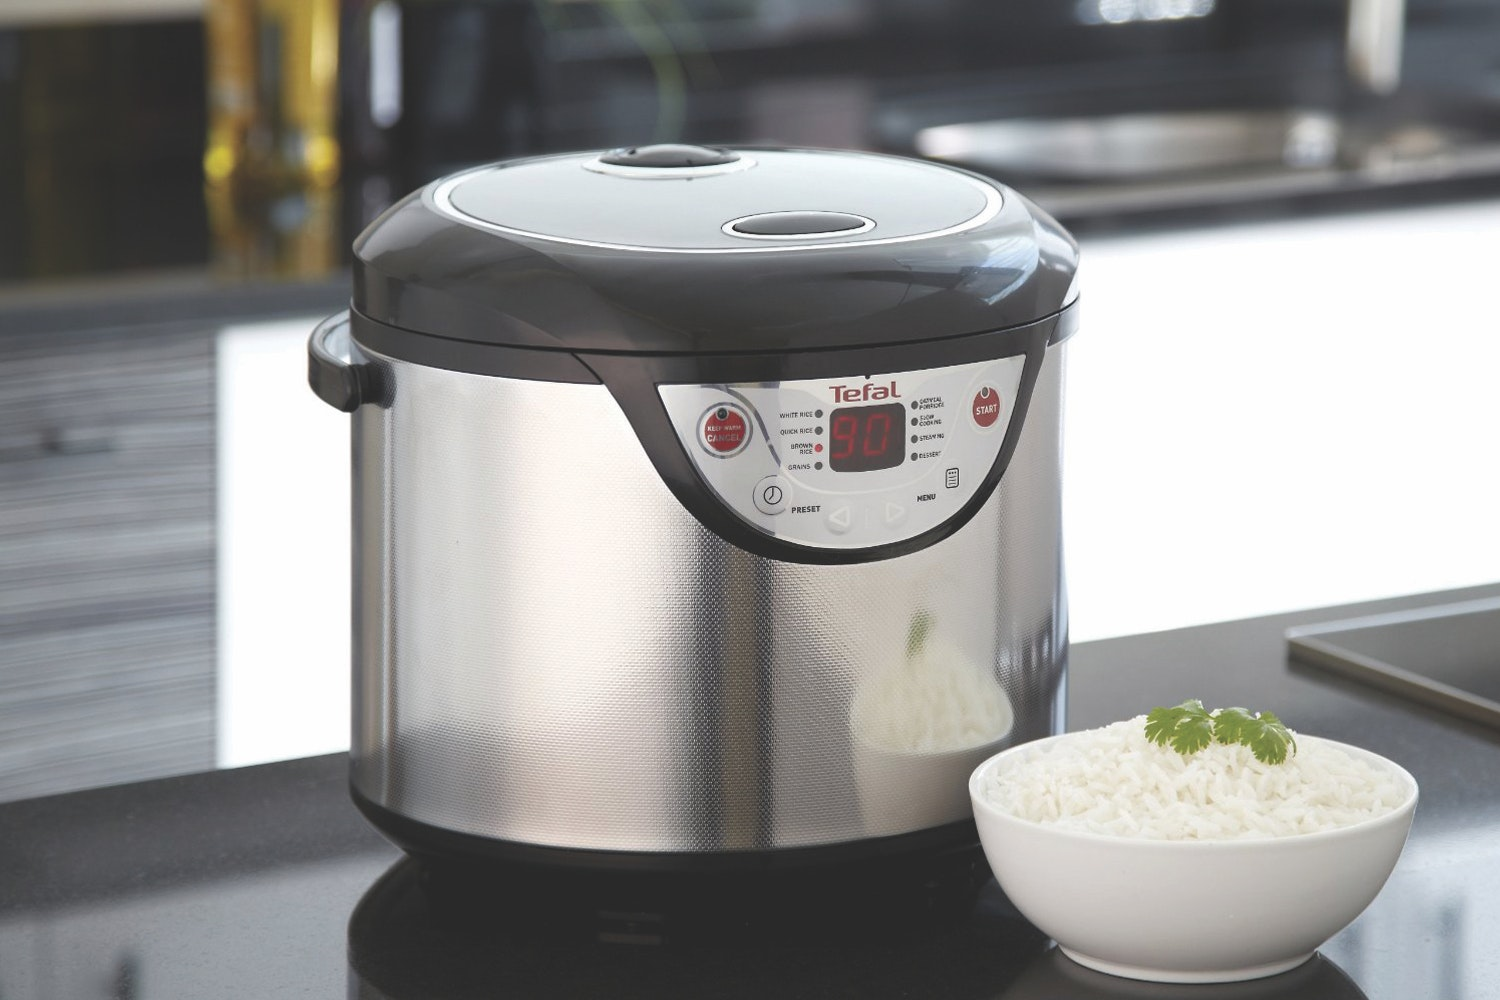 Tefal 8 in 1 Multi Cooker